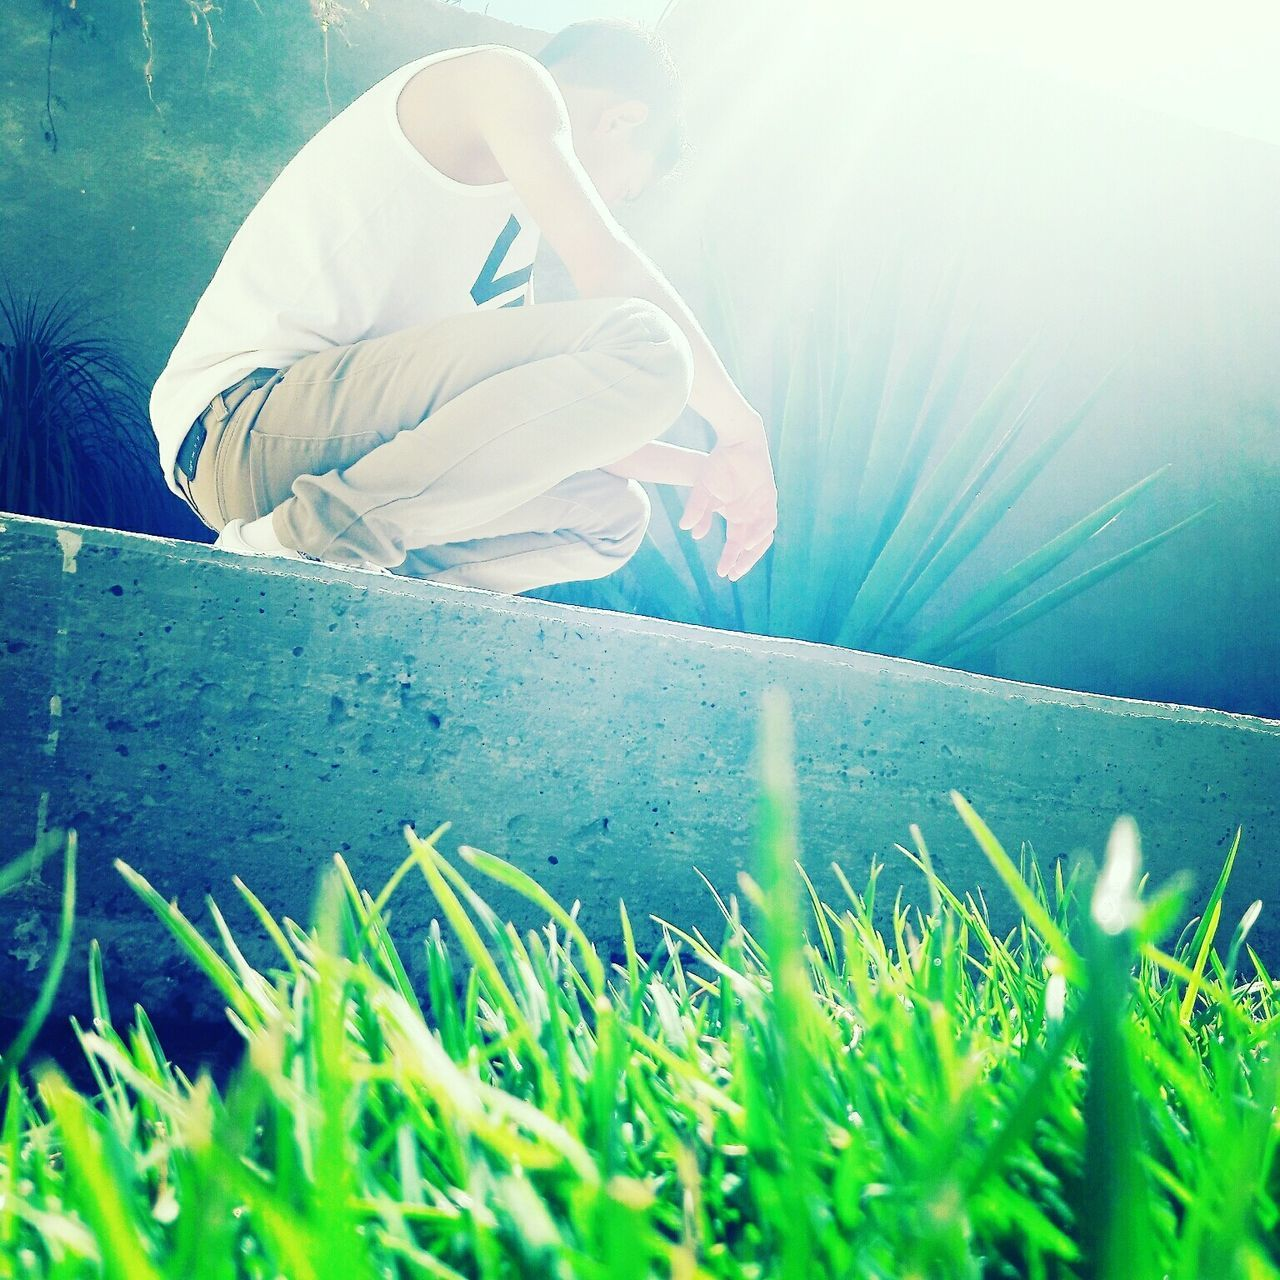 grass, real people, one person, sunlight, day, outdoors, women, nature, human hand, people